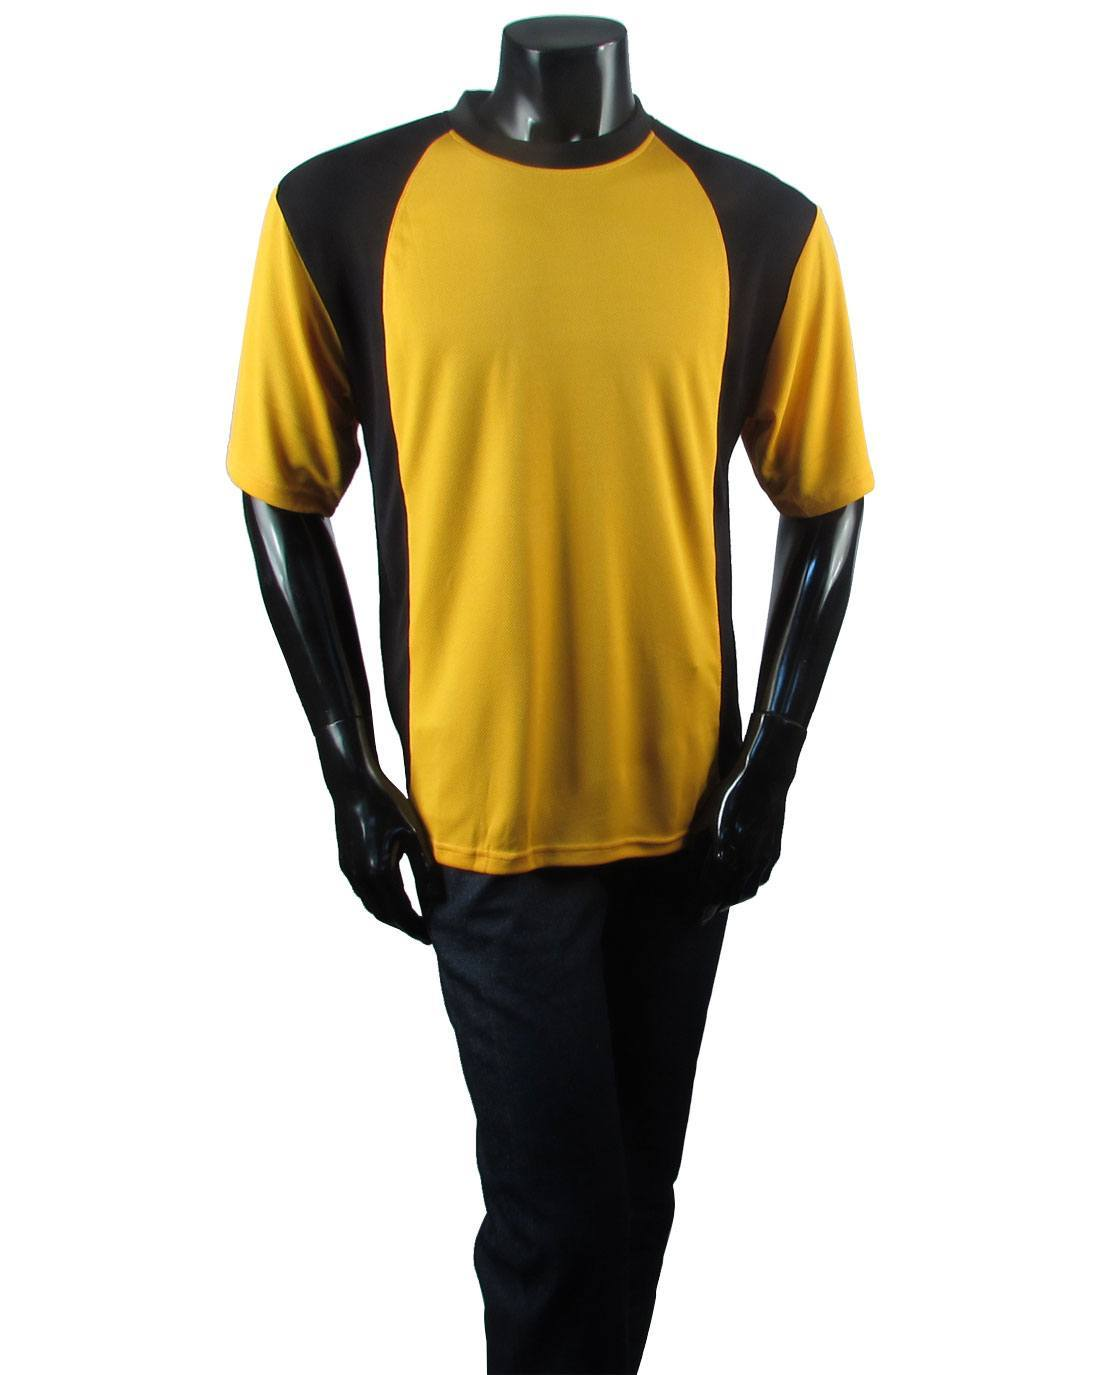 Men's round neck two tone short sleeve jersey-id.27362a